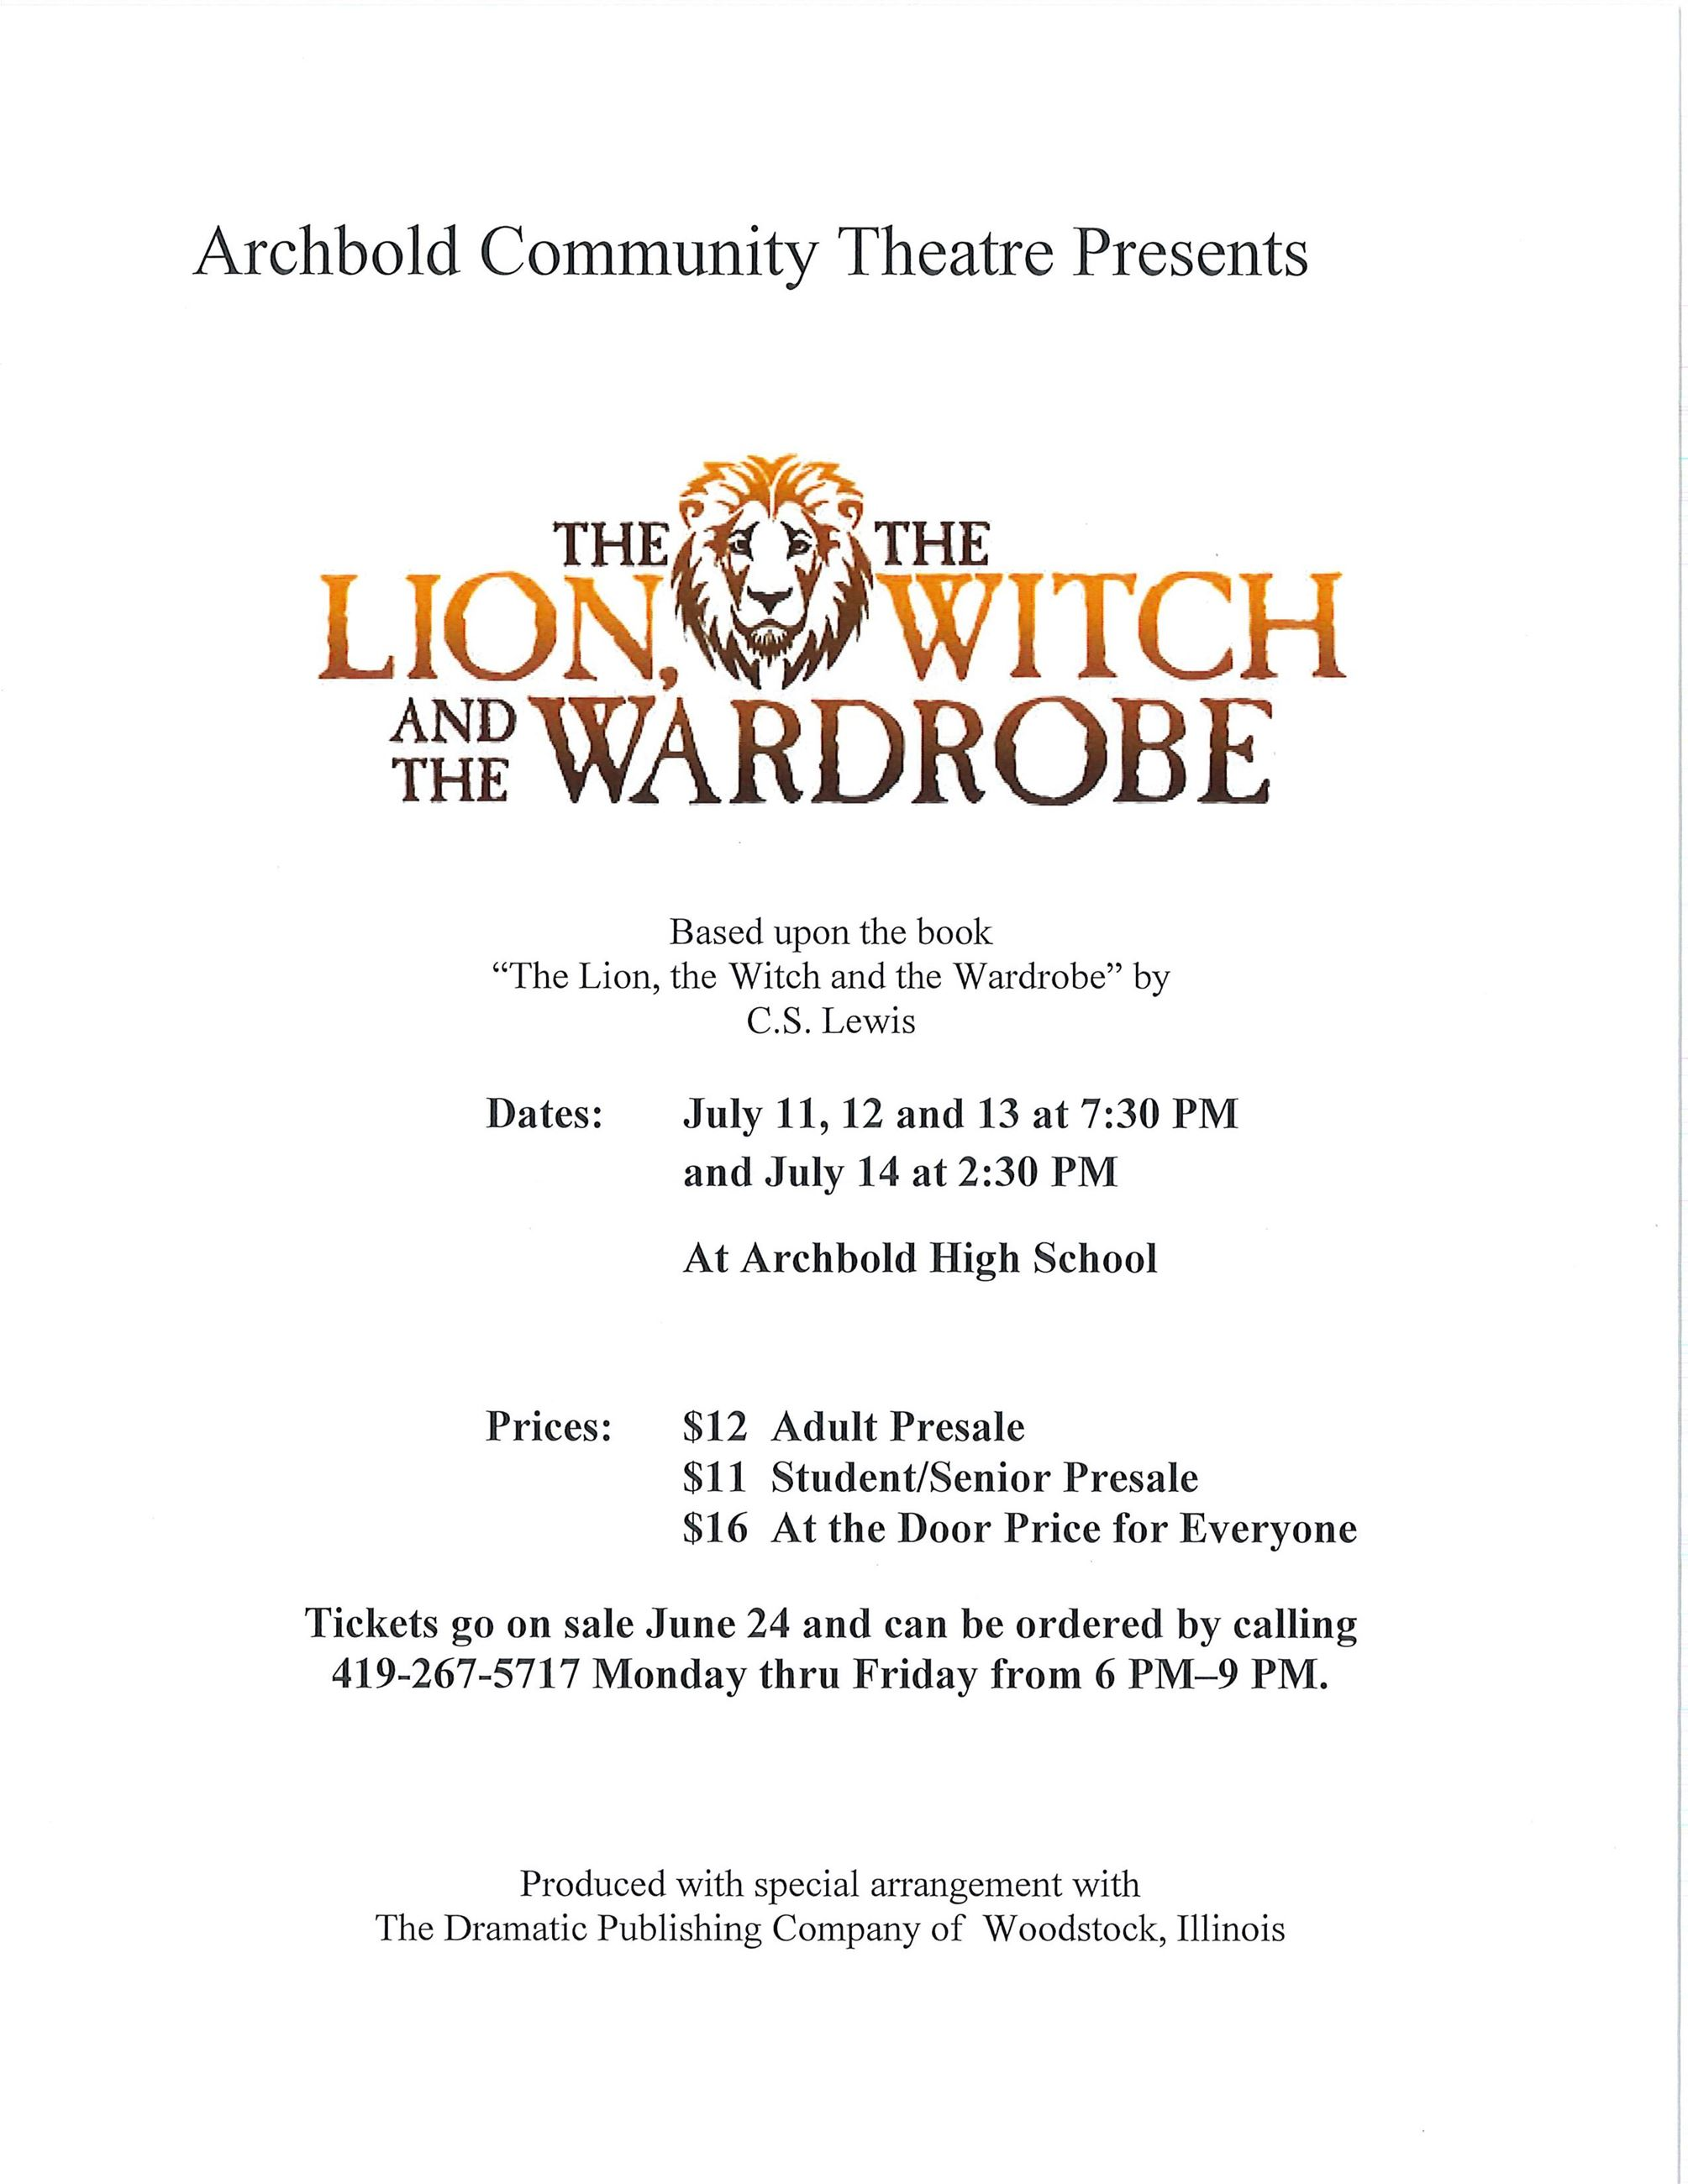 ACT presents: Lion, the Witch and the Wardrobe, July 20, 21 & 22